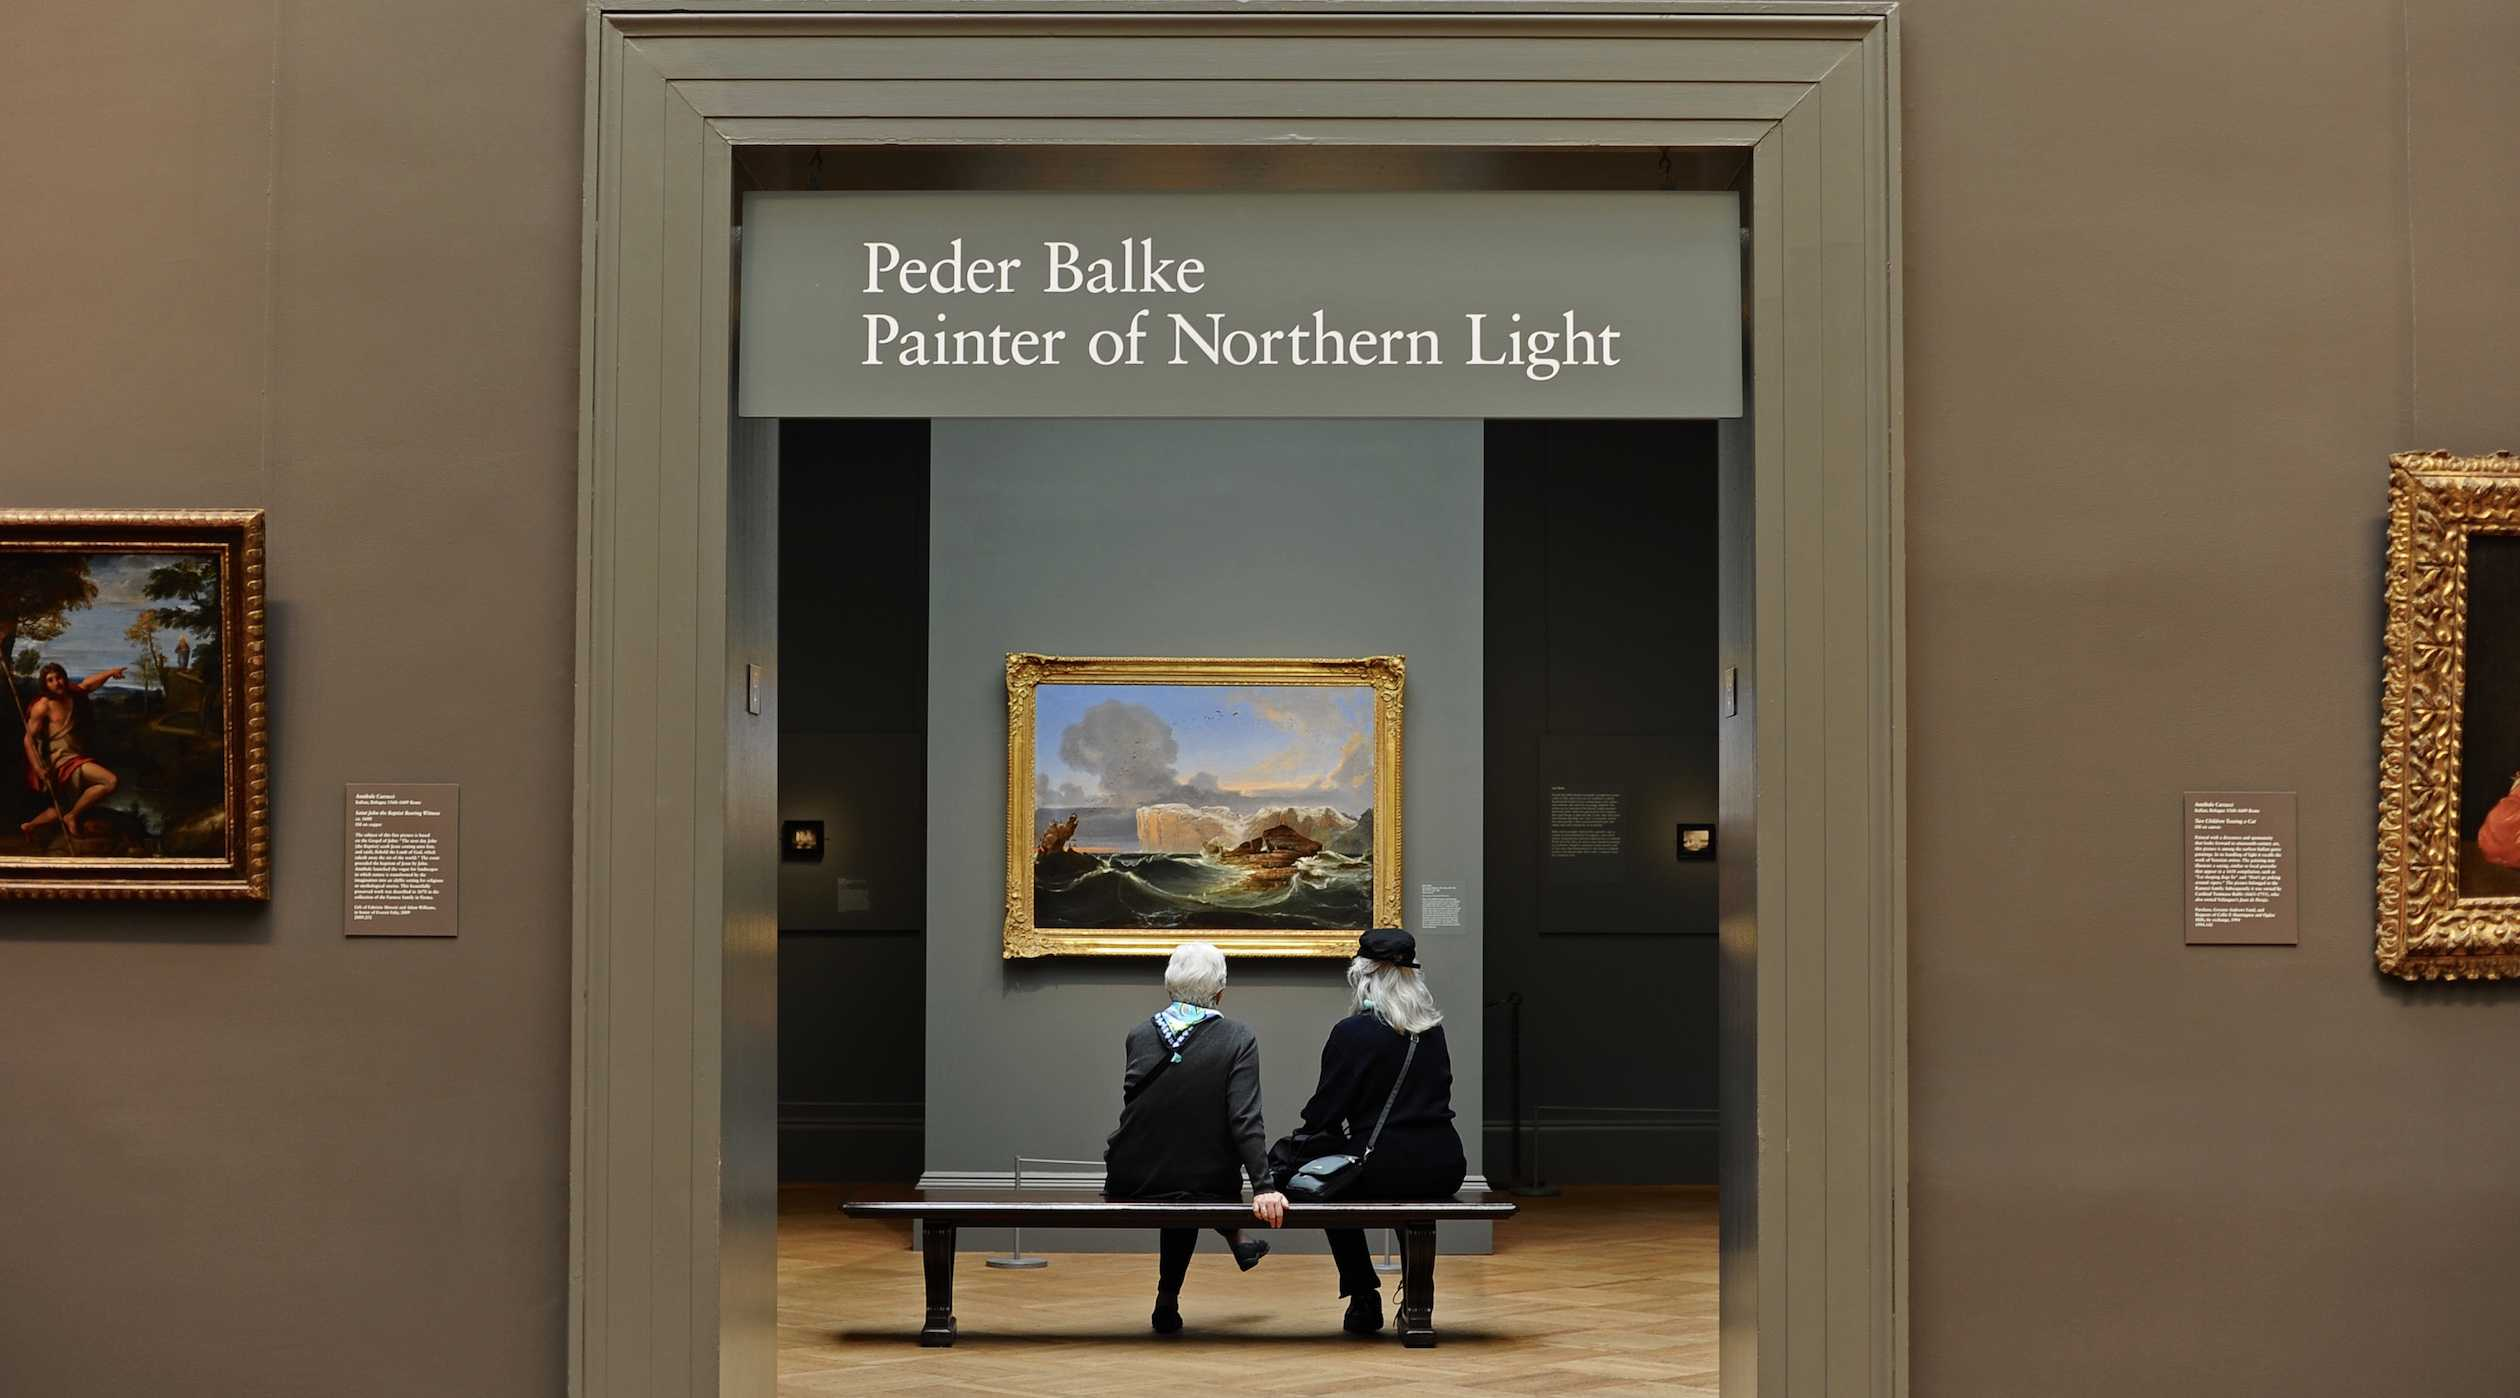 """Peder Balke: Painter of the Northern Light"" is on view at the Met Fifth Avenue at 1000 Fifth Ave. through July 9."